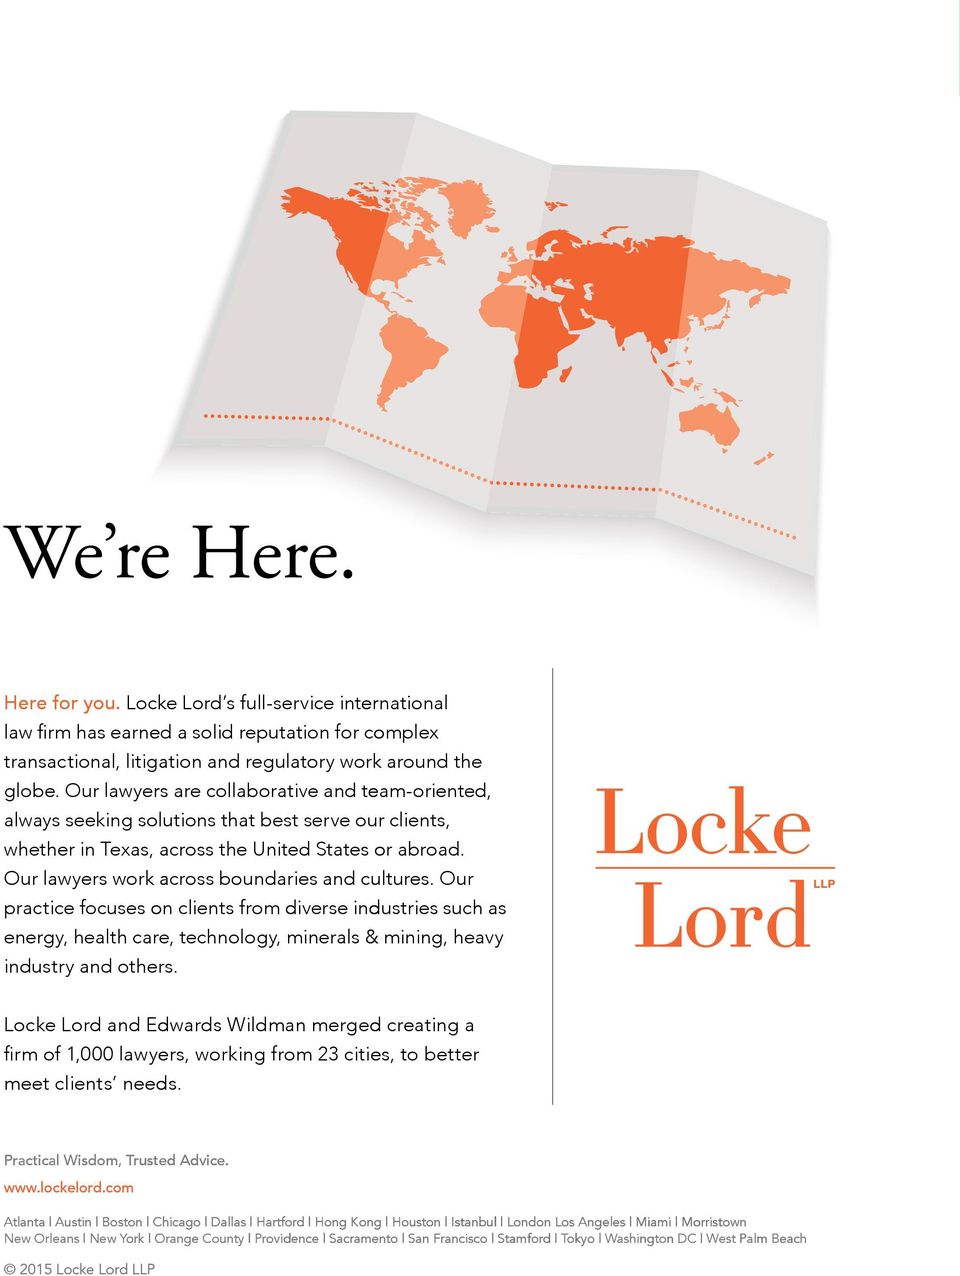 Our Practical Wisdom, Trusted Advice. www.lockelord.